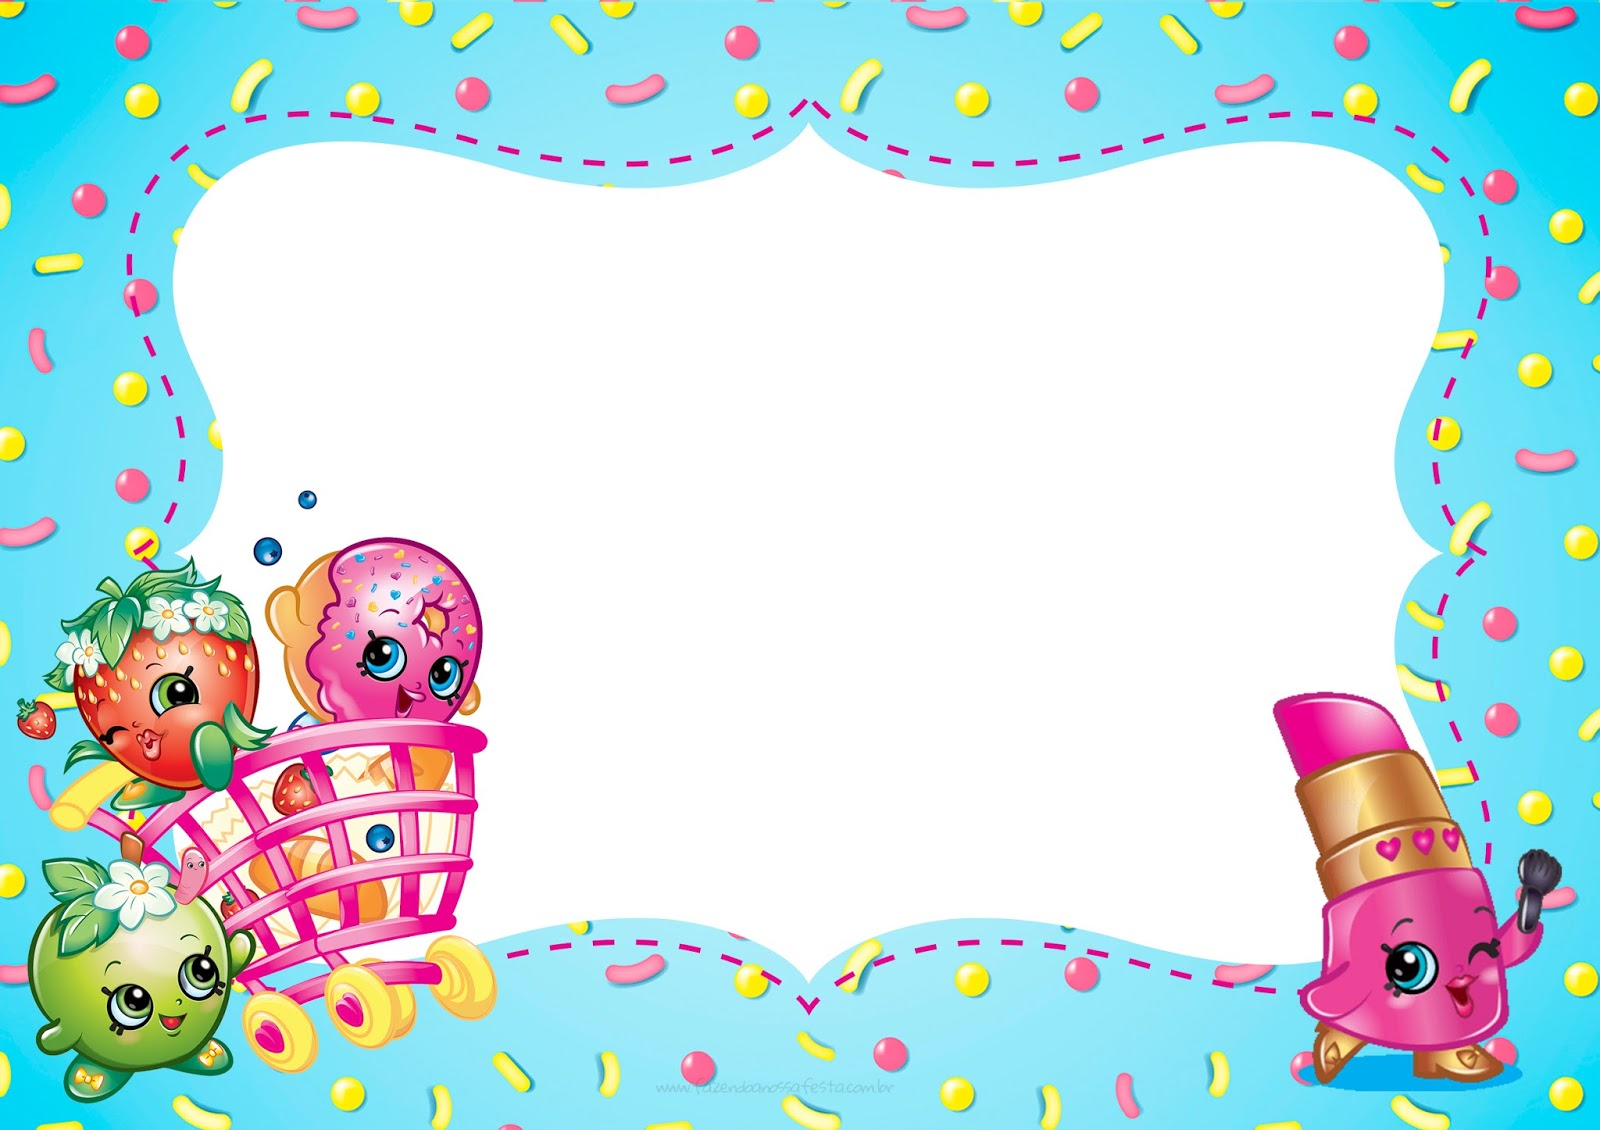 graphic about Free Printable Shopkins Invitations identified as Shopkins: Free of charge Printable Invites. - Oh My Fiesta! within english